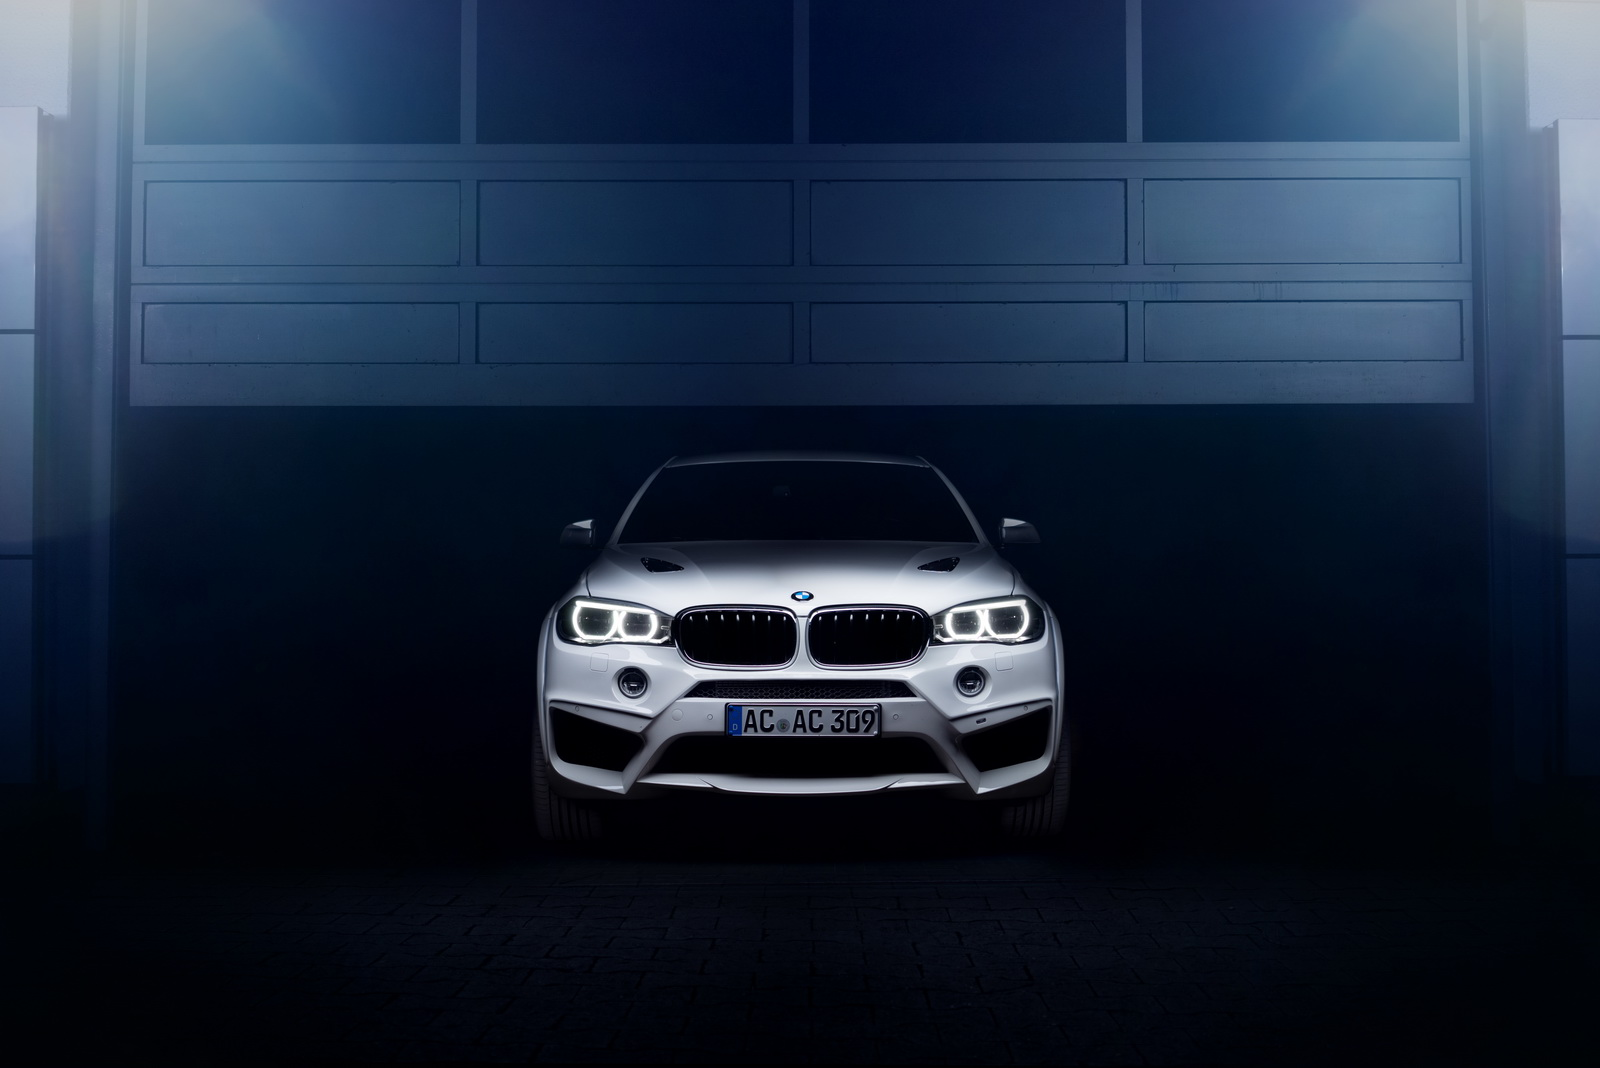 2008 ac schnitzer bmw x5 falcon image collections hd cars wallpaper 2010 ac schnitzer bmw x6 m image collections hd cars wallpaper 2008 ac schnitzer bmw x5 vanachro Gallery